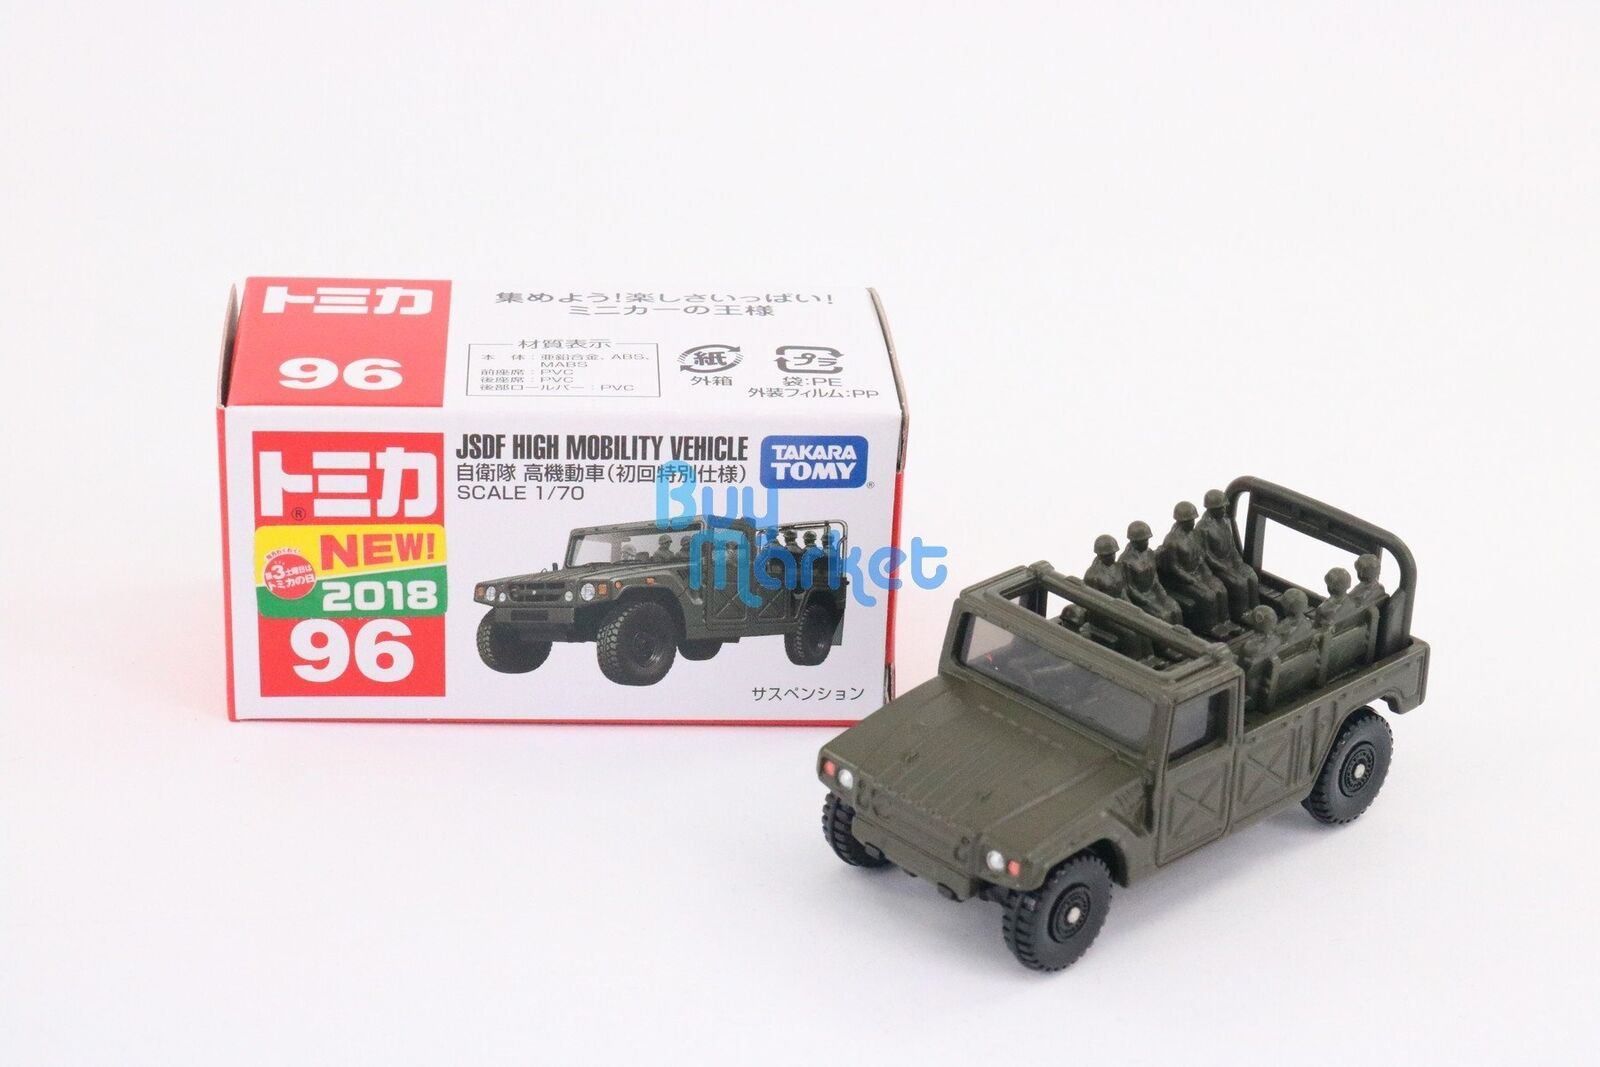 2018 Tomica No.96 JSDF Hight Mobility Vehicle 1//70 Diecast Model Car New